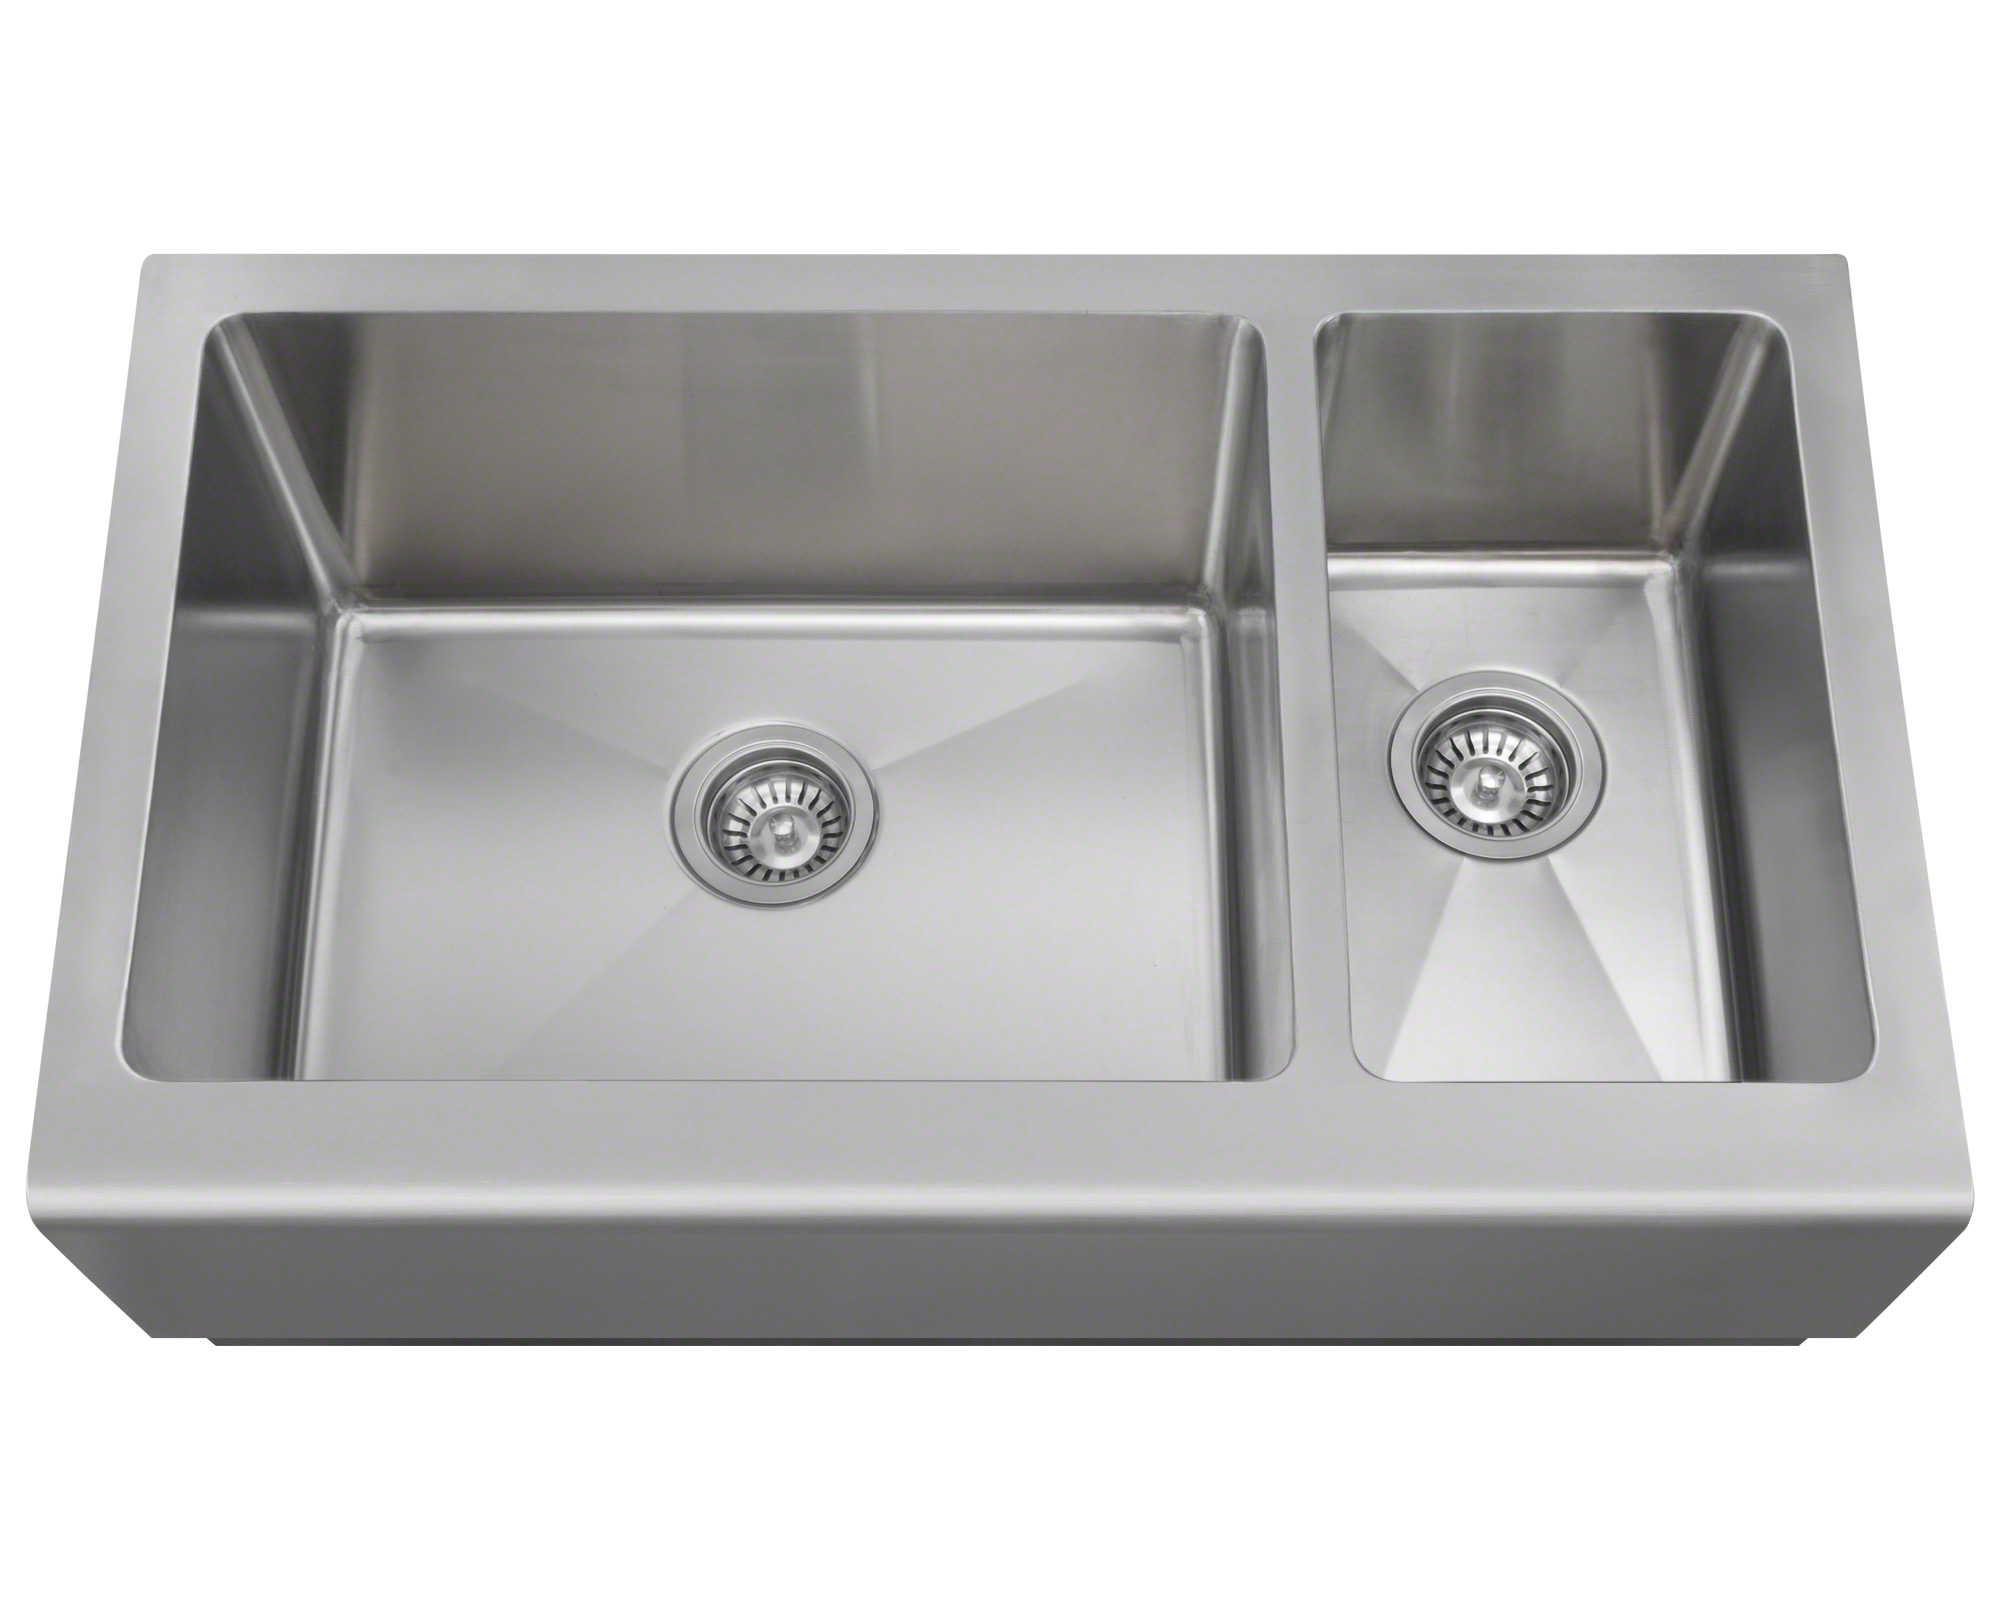 Polaris PL704 Offset Stainless Steel Apron Sink